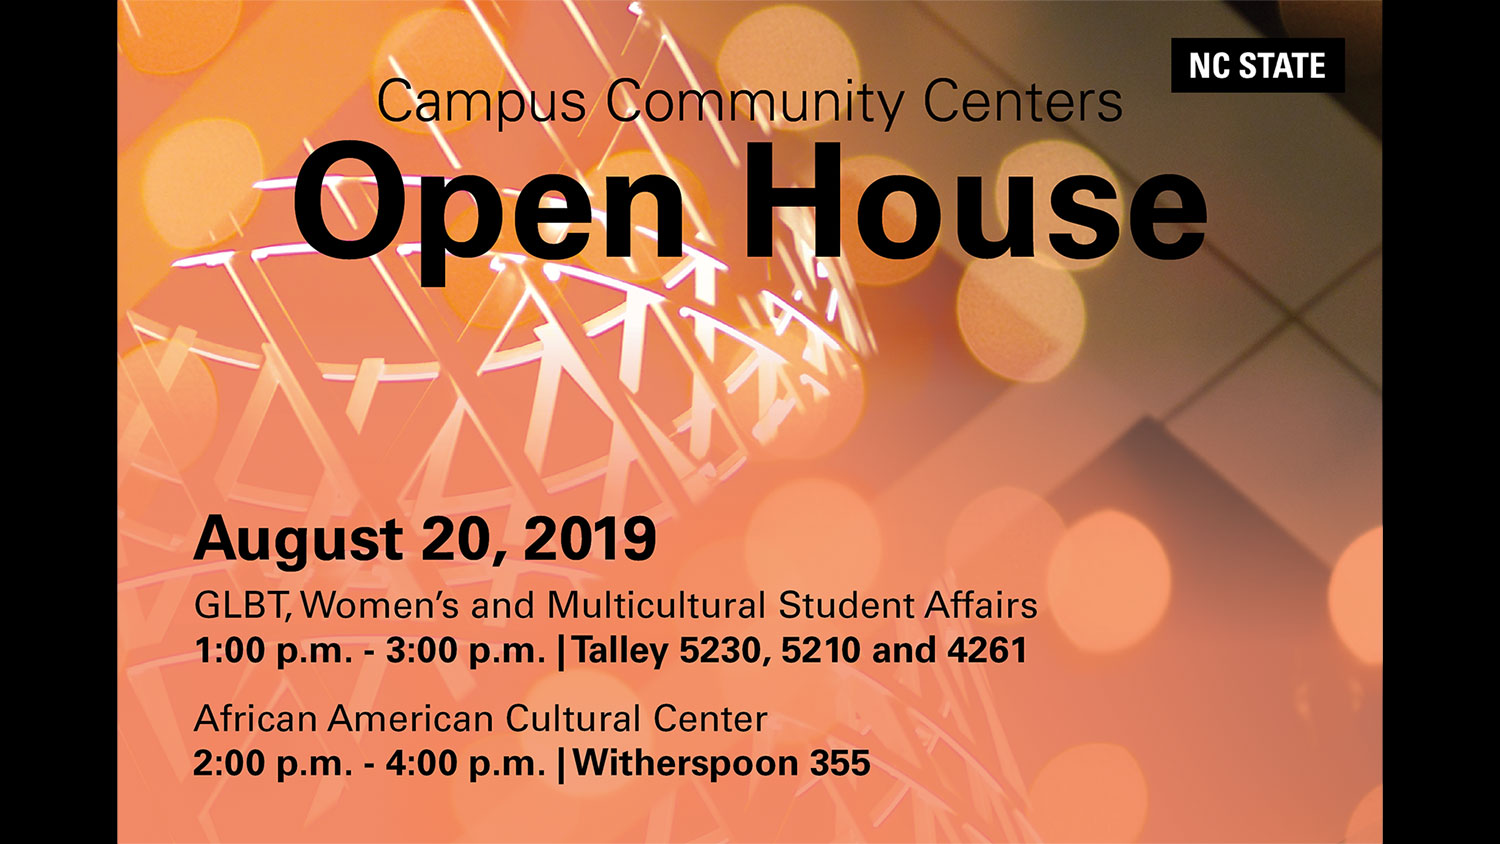 Campus Community Centers Open House